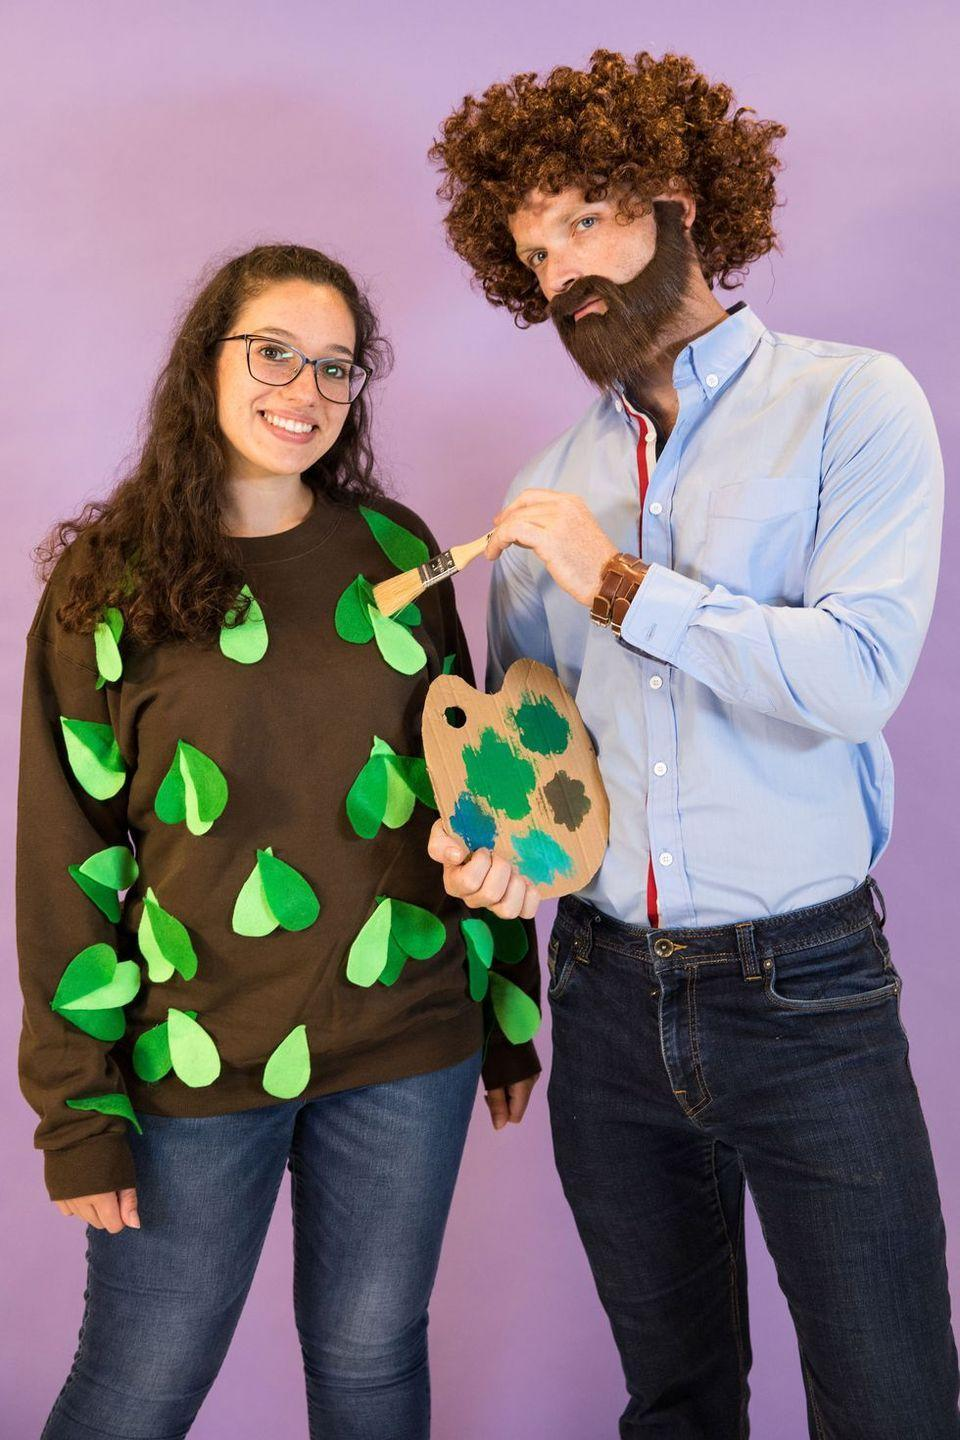 """<p>Even sans Happy Tree, this costume is still party material, especially when you pose with a paint pallet in photos. </p><p><a class=""""link rapid-noclick-resp"""" href=""""https://www.amazon.com/Artlicious-Over-Sized-Palette-Acrylic-Watercolor/dp/B074QQ9GBZ/?tag=syn-yahoo-20&ascsubtag=%5Bartid%7C10055.g.28089320%5Bsrc%7Cyahoo-us"""" rel=""""nofollow noopener"""" target=""""_blank"""" data-ylk=""""slk:SHOP PAINT PALETTES"""">SHOP PAINT PALETTES</a></p>"""